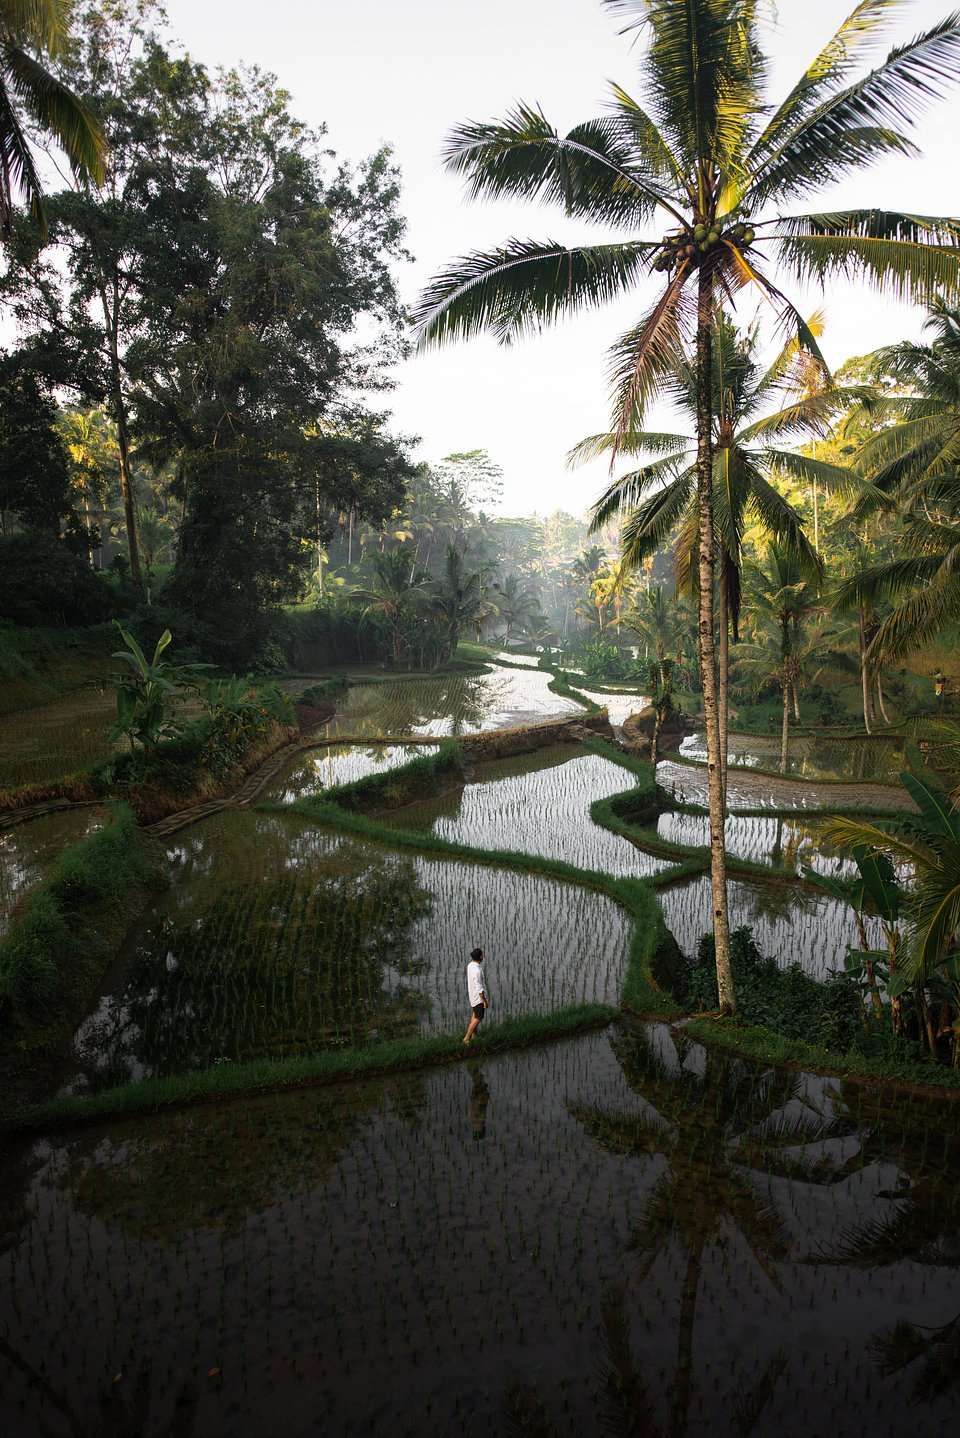 Location: Tegalalang Rice Terraces, Indonesia